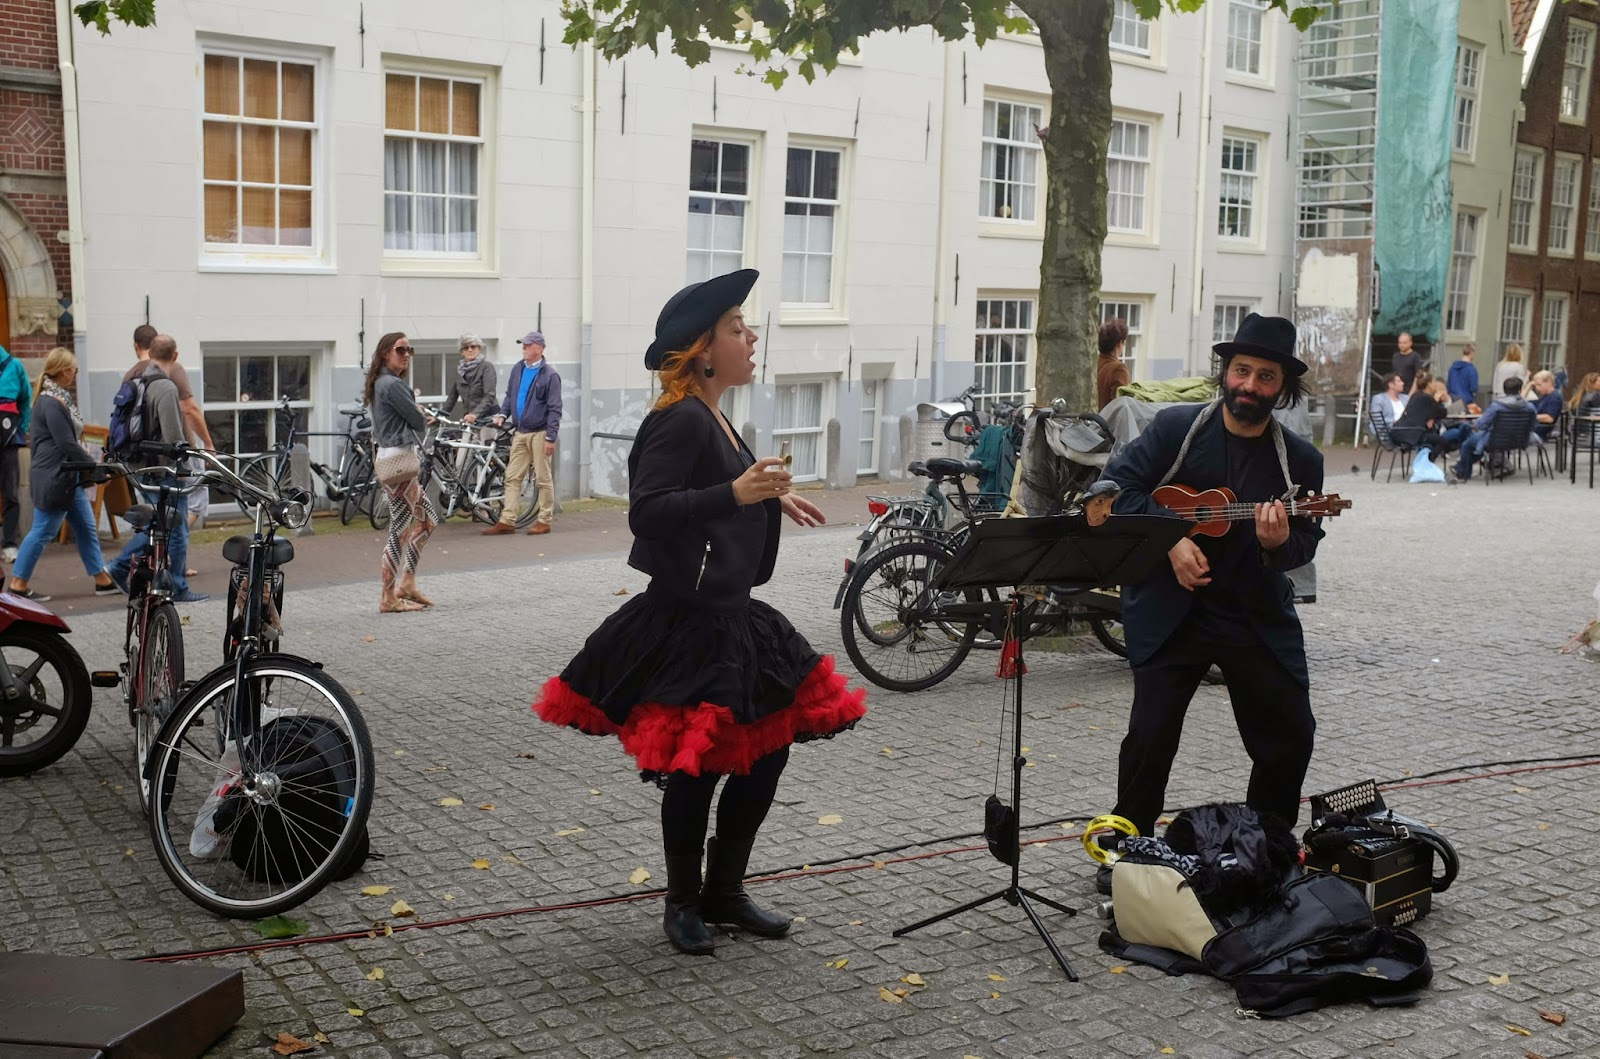 Amsterdam Netherlands Europe travel buskers